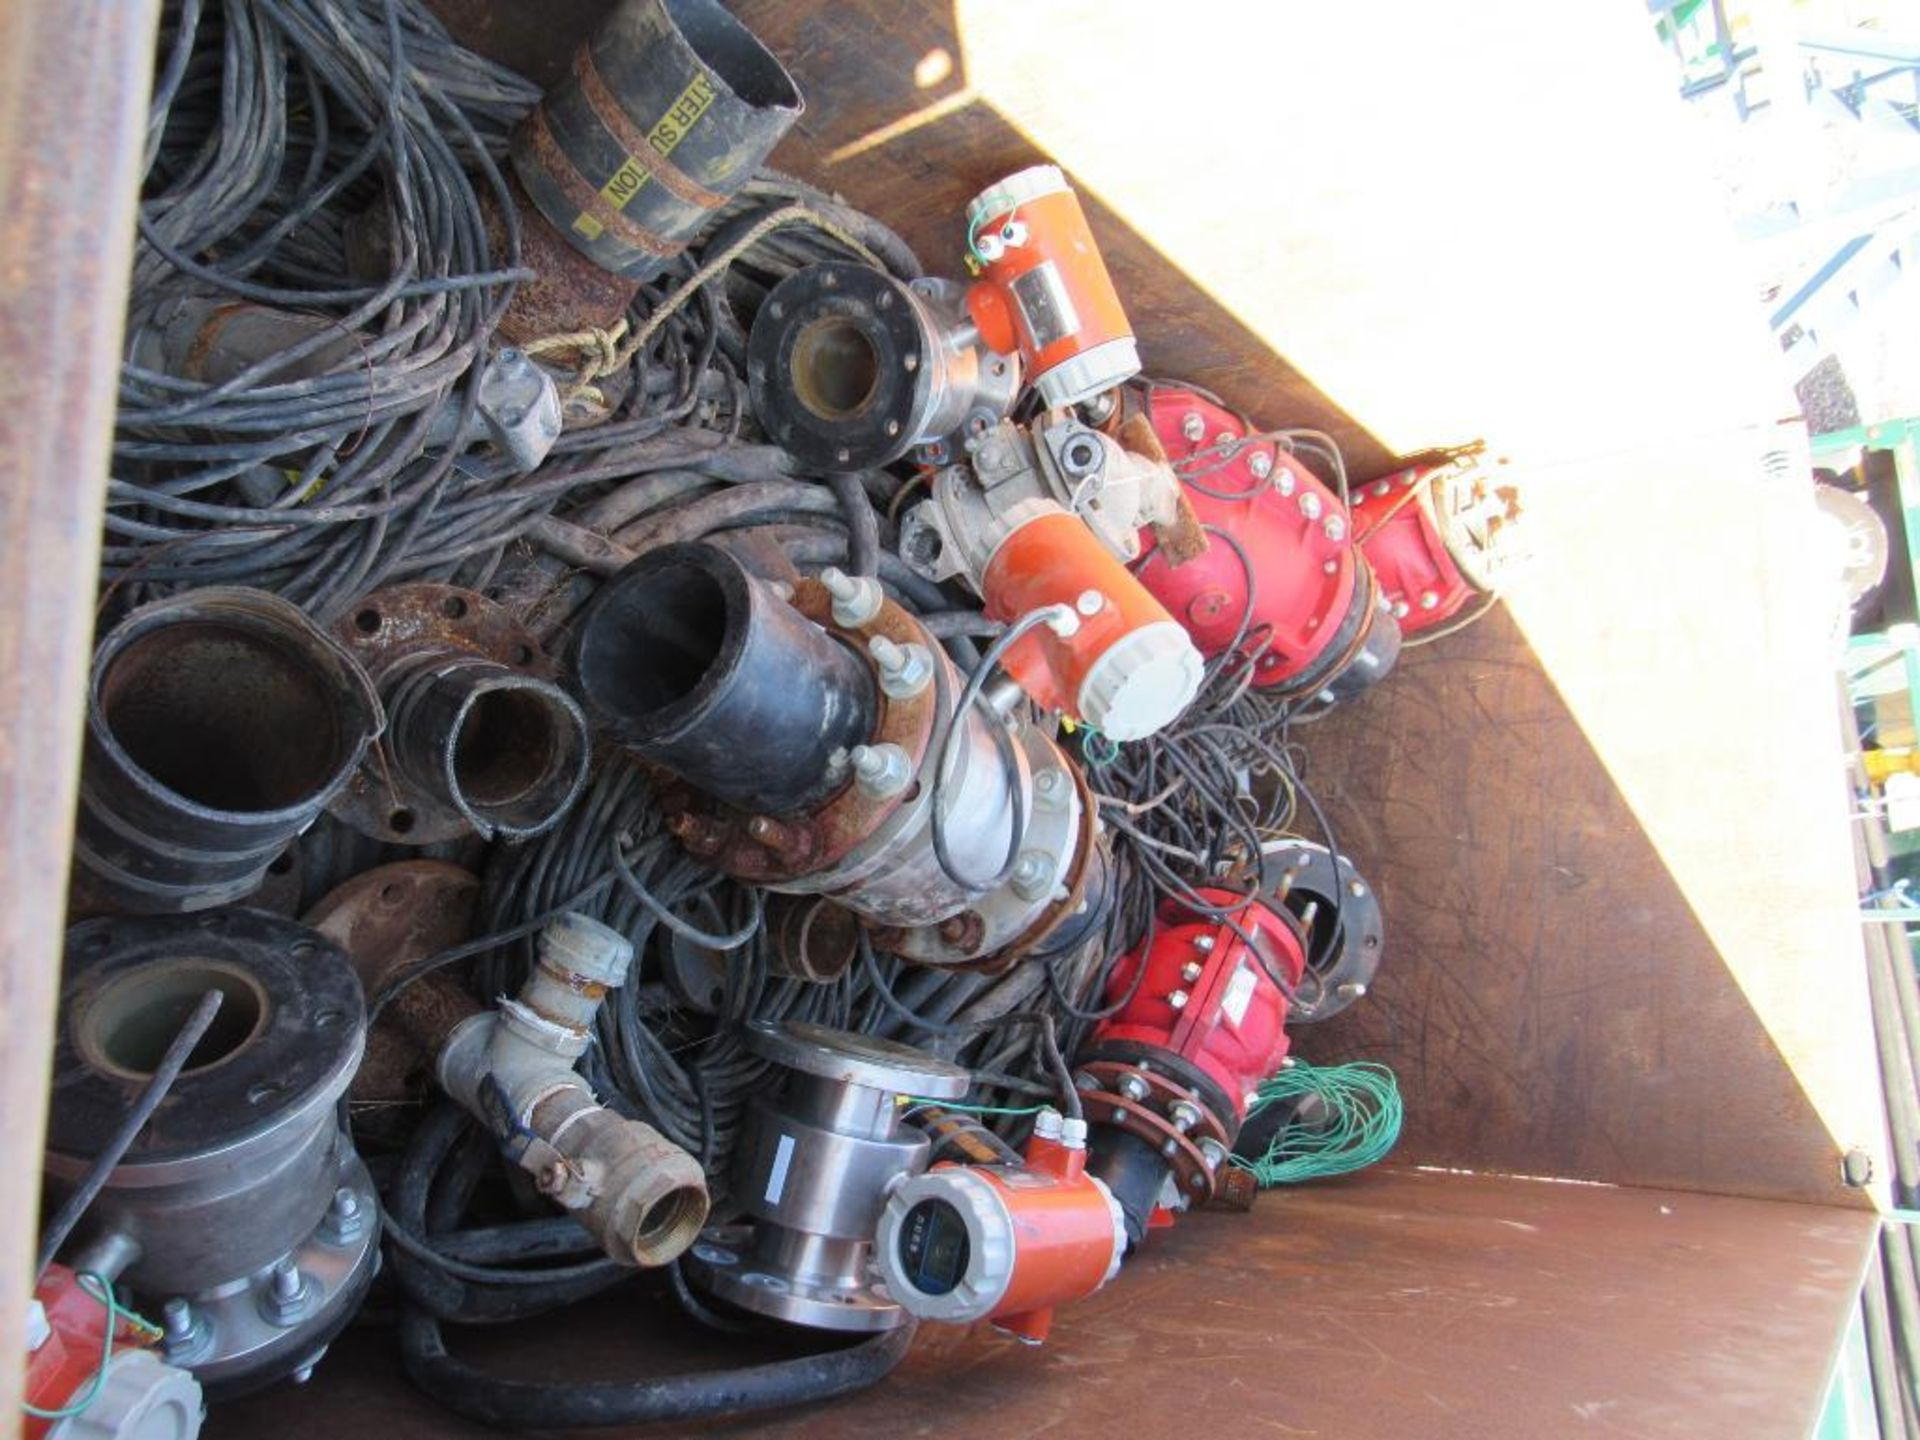 Lot 22 - Metal Container with Assorted Pumps, Valves, Cables, Fittings, and Misc.